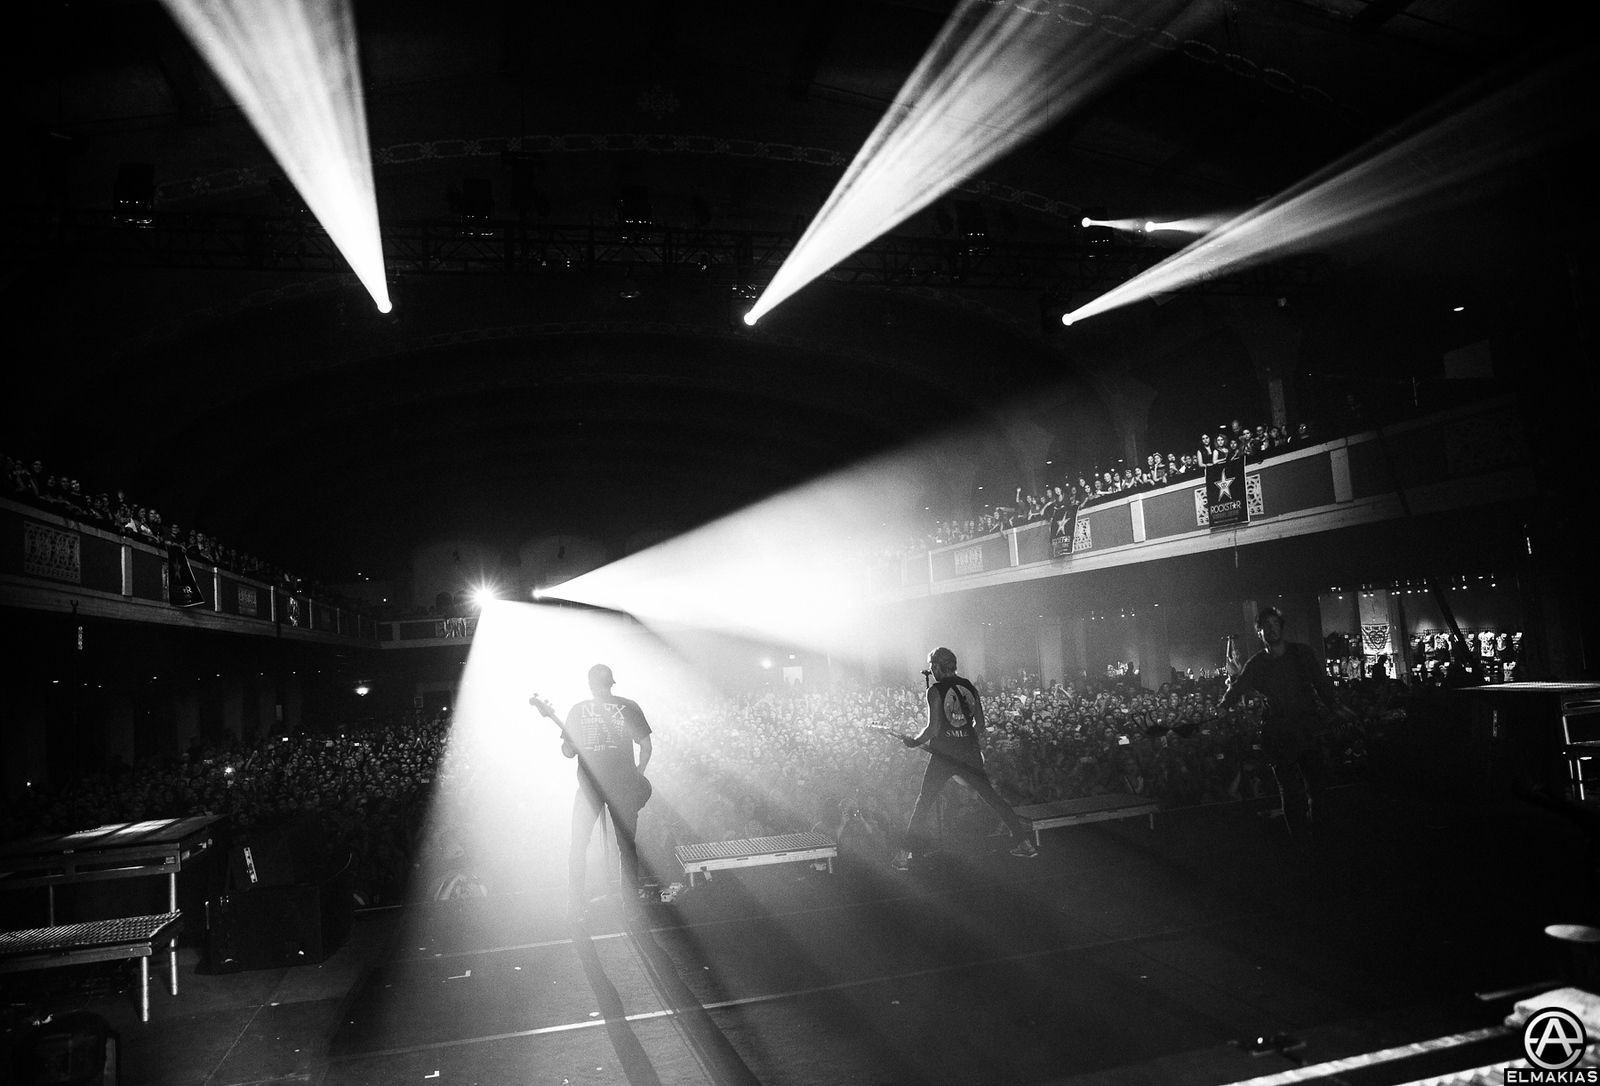 All Time Low by Adam Elmakias - Back To The Future Hearts Tour